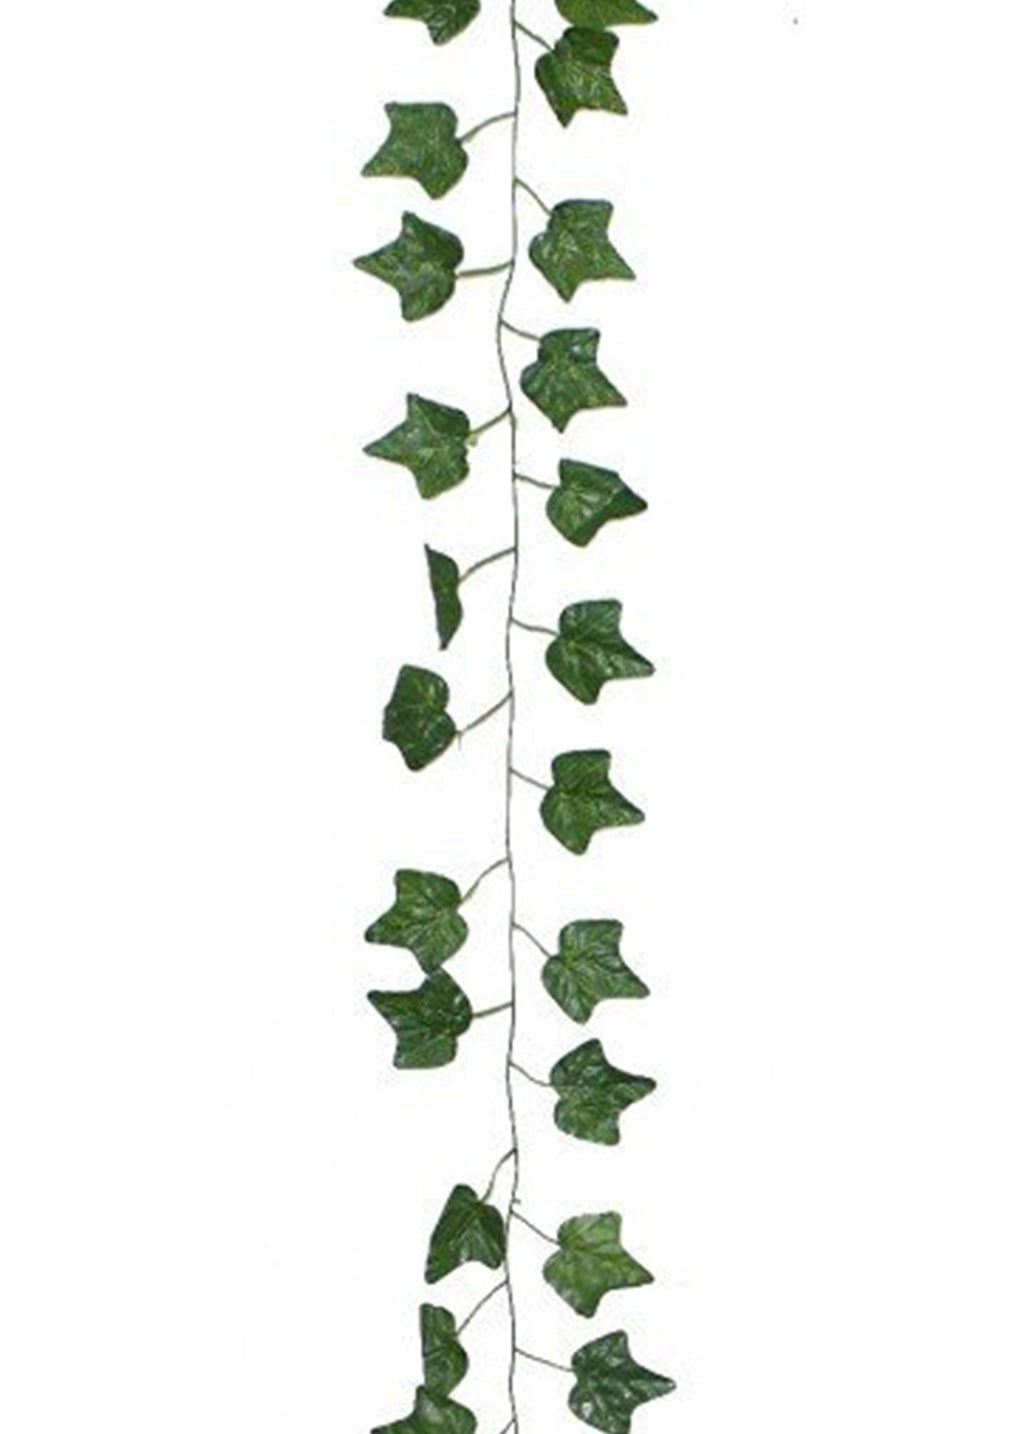 Ivy Artificial Creeper Plant for Balcony Walls Garden Decoration  (153 cm, Green) - Artificial Flowers & Plants - PolliNation